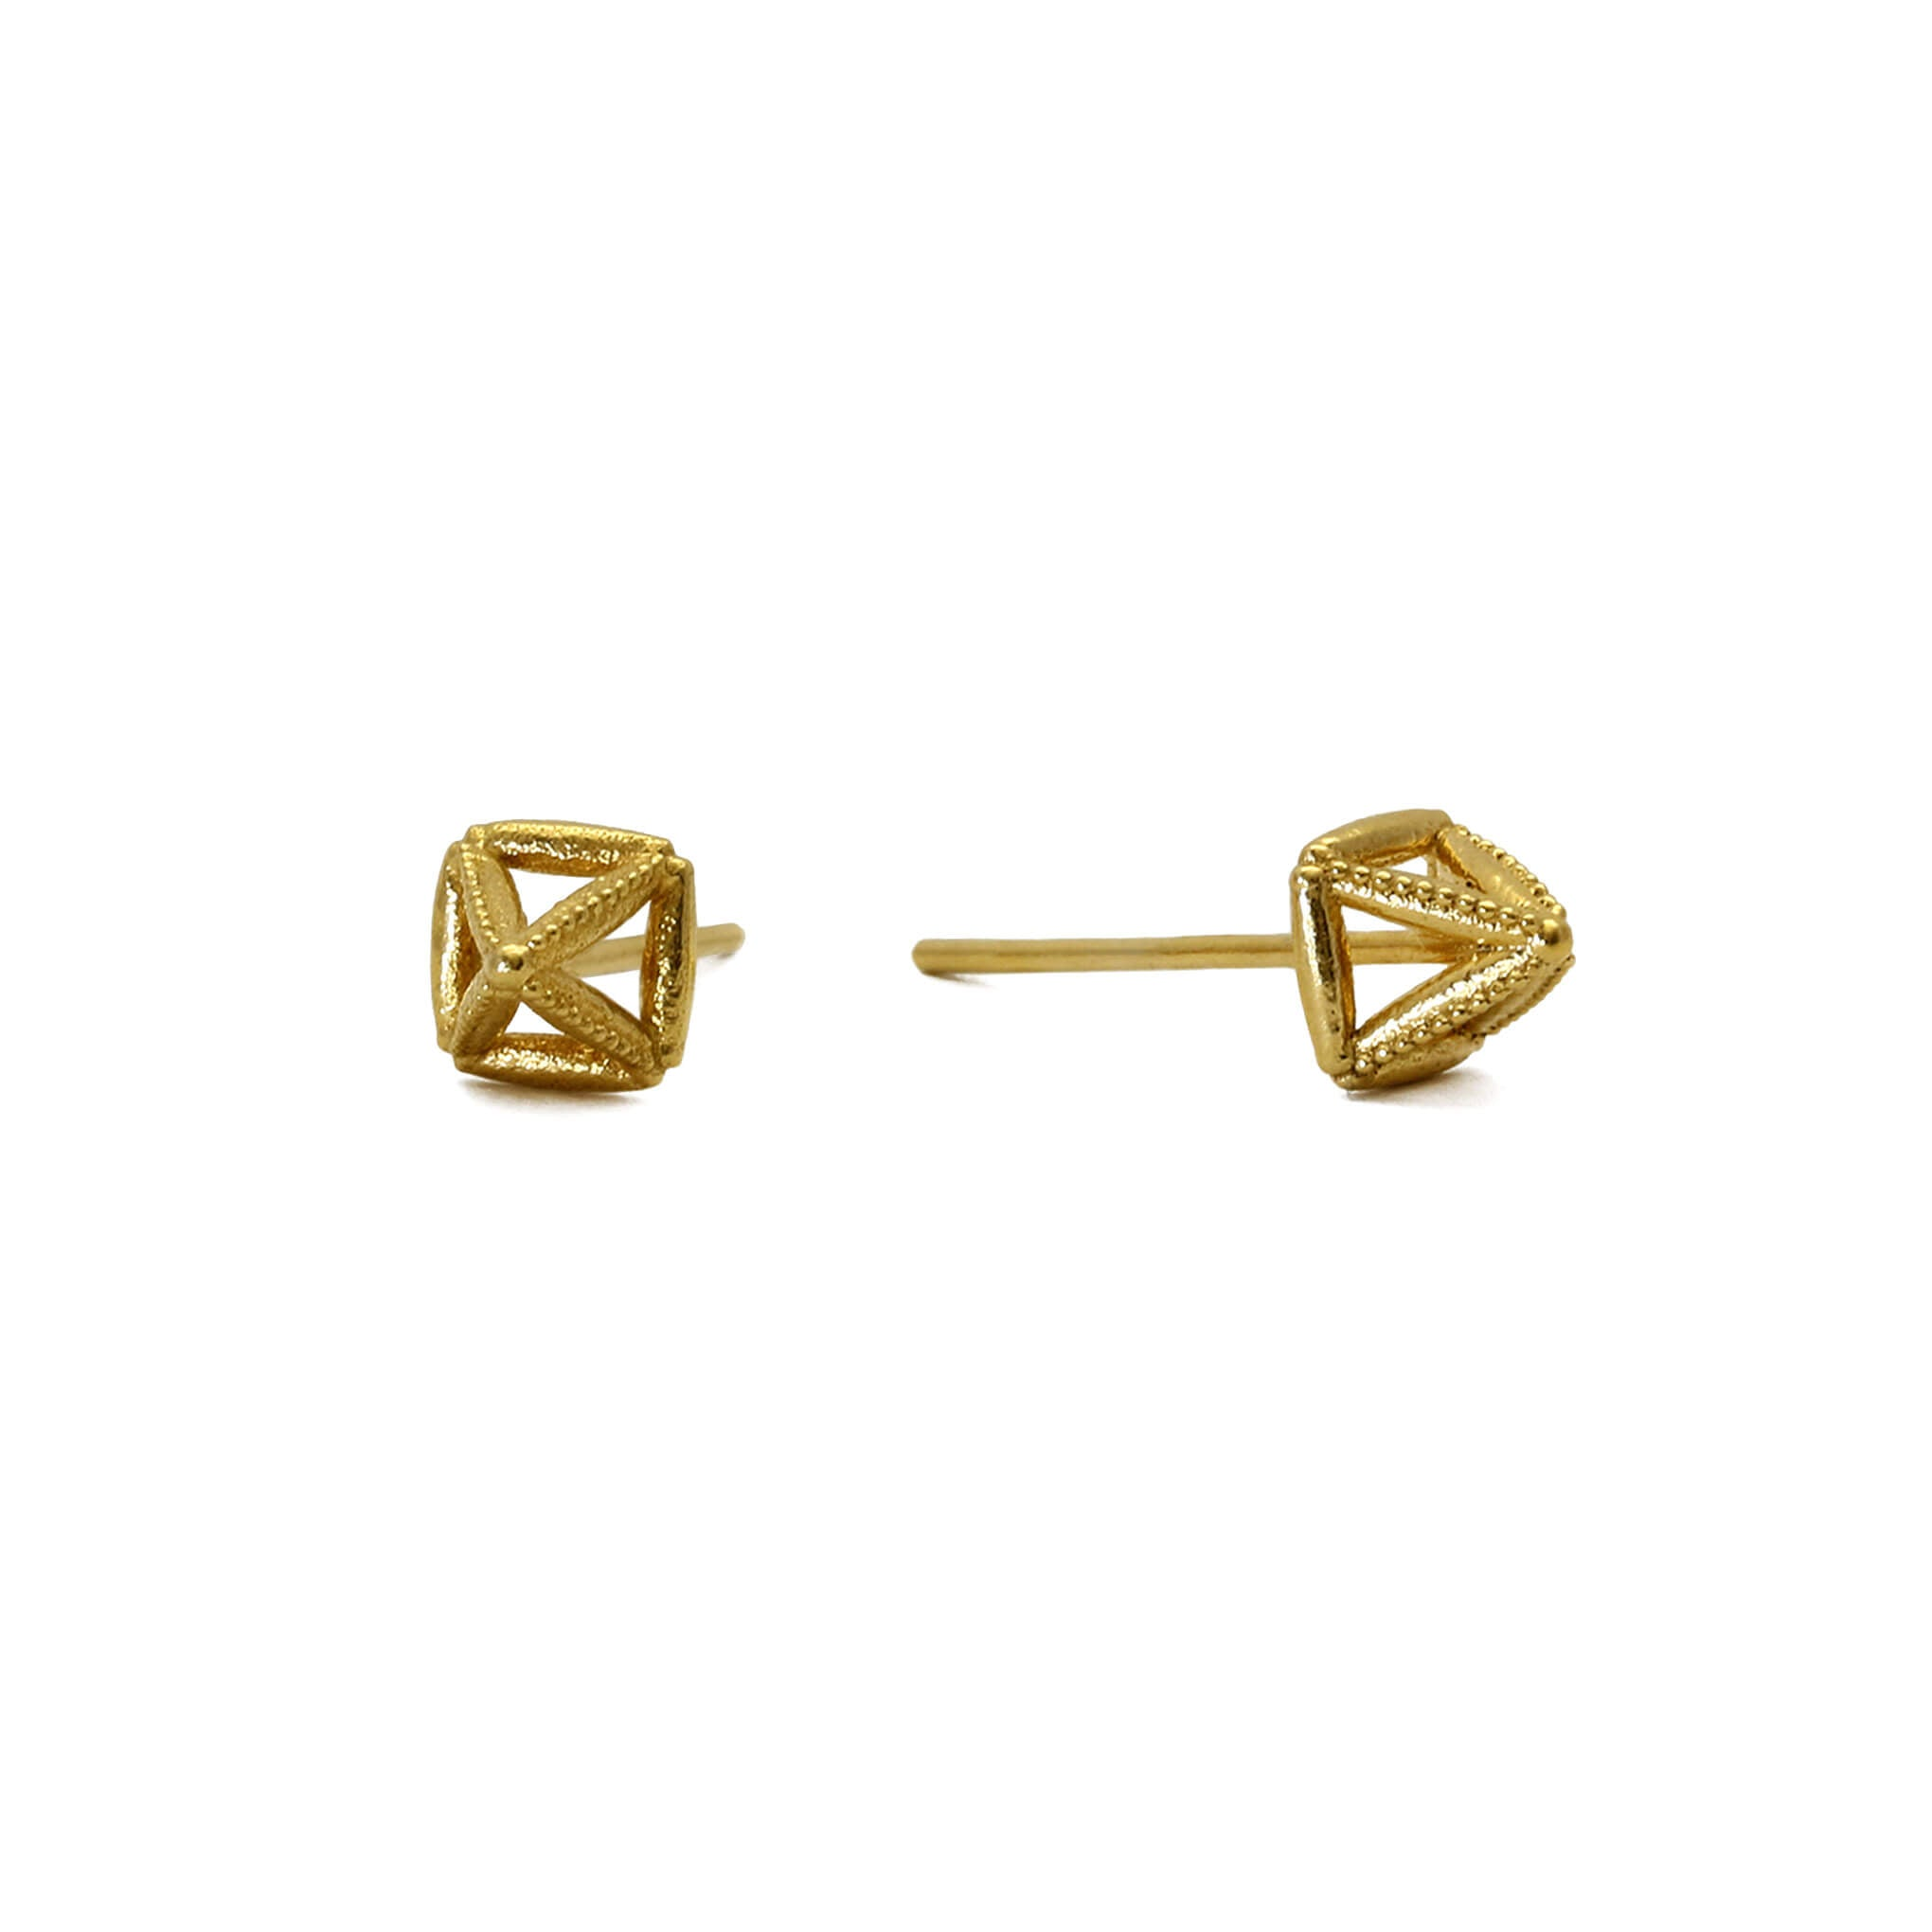 Silver and Gold Earrings | Rosie Kent Jewellery